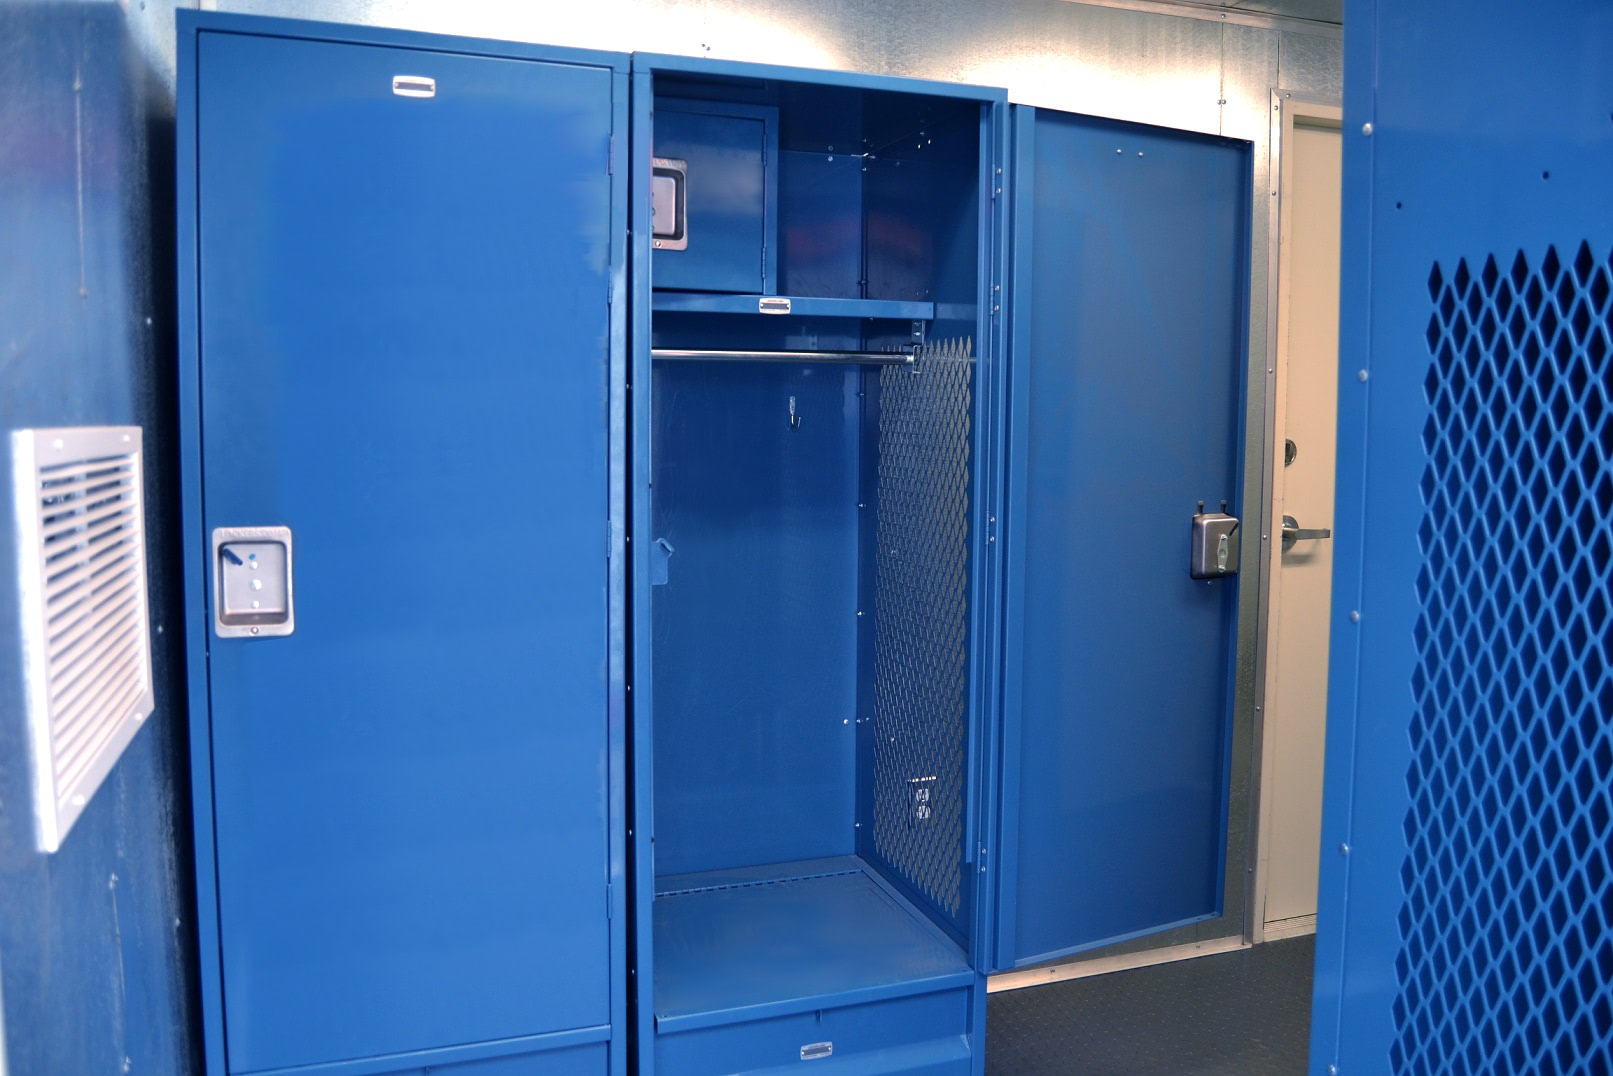 Locker installed inside of locker room with bathroom